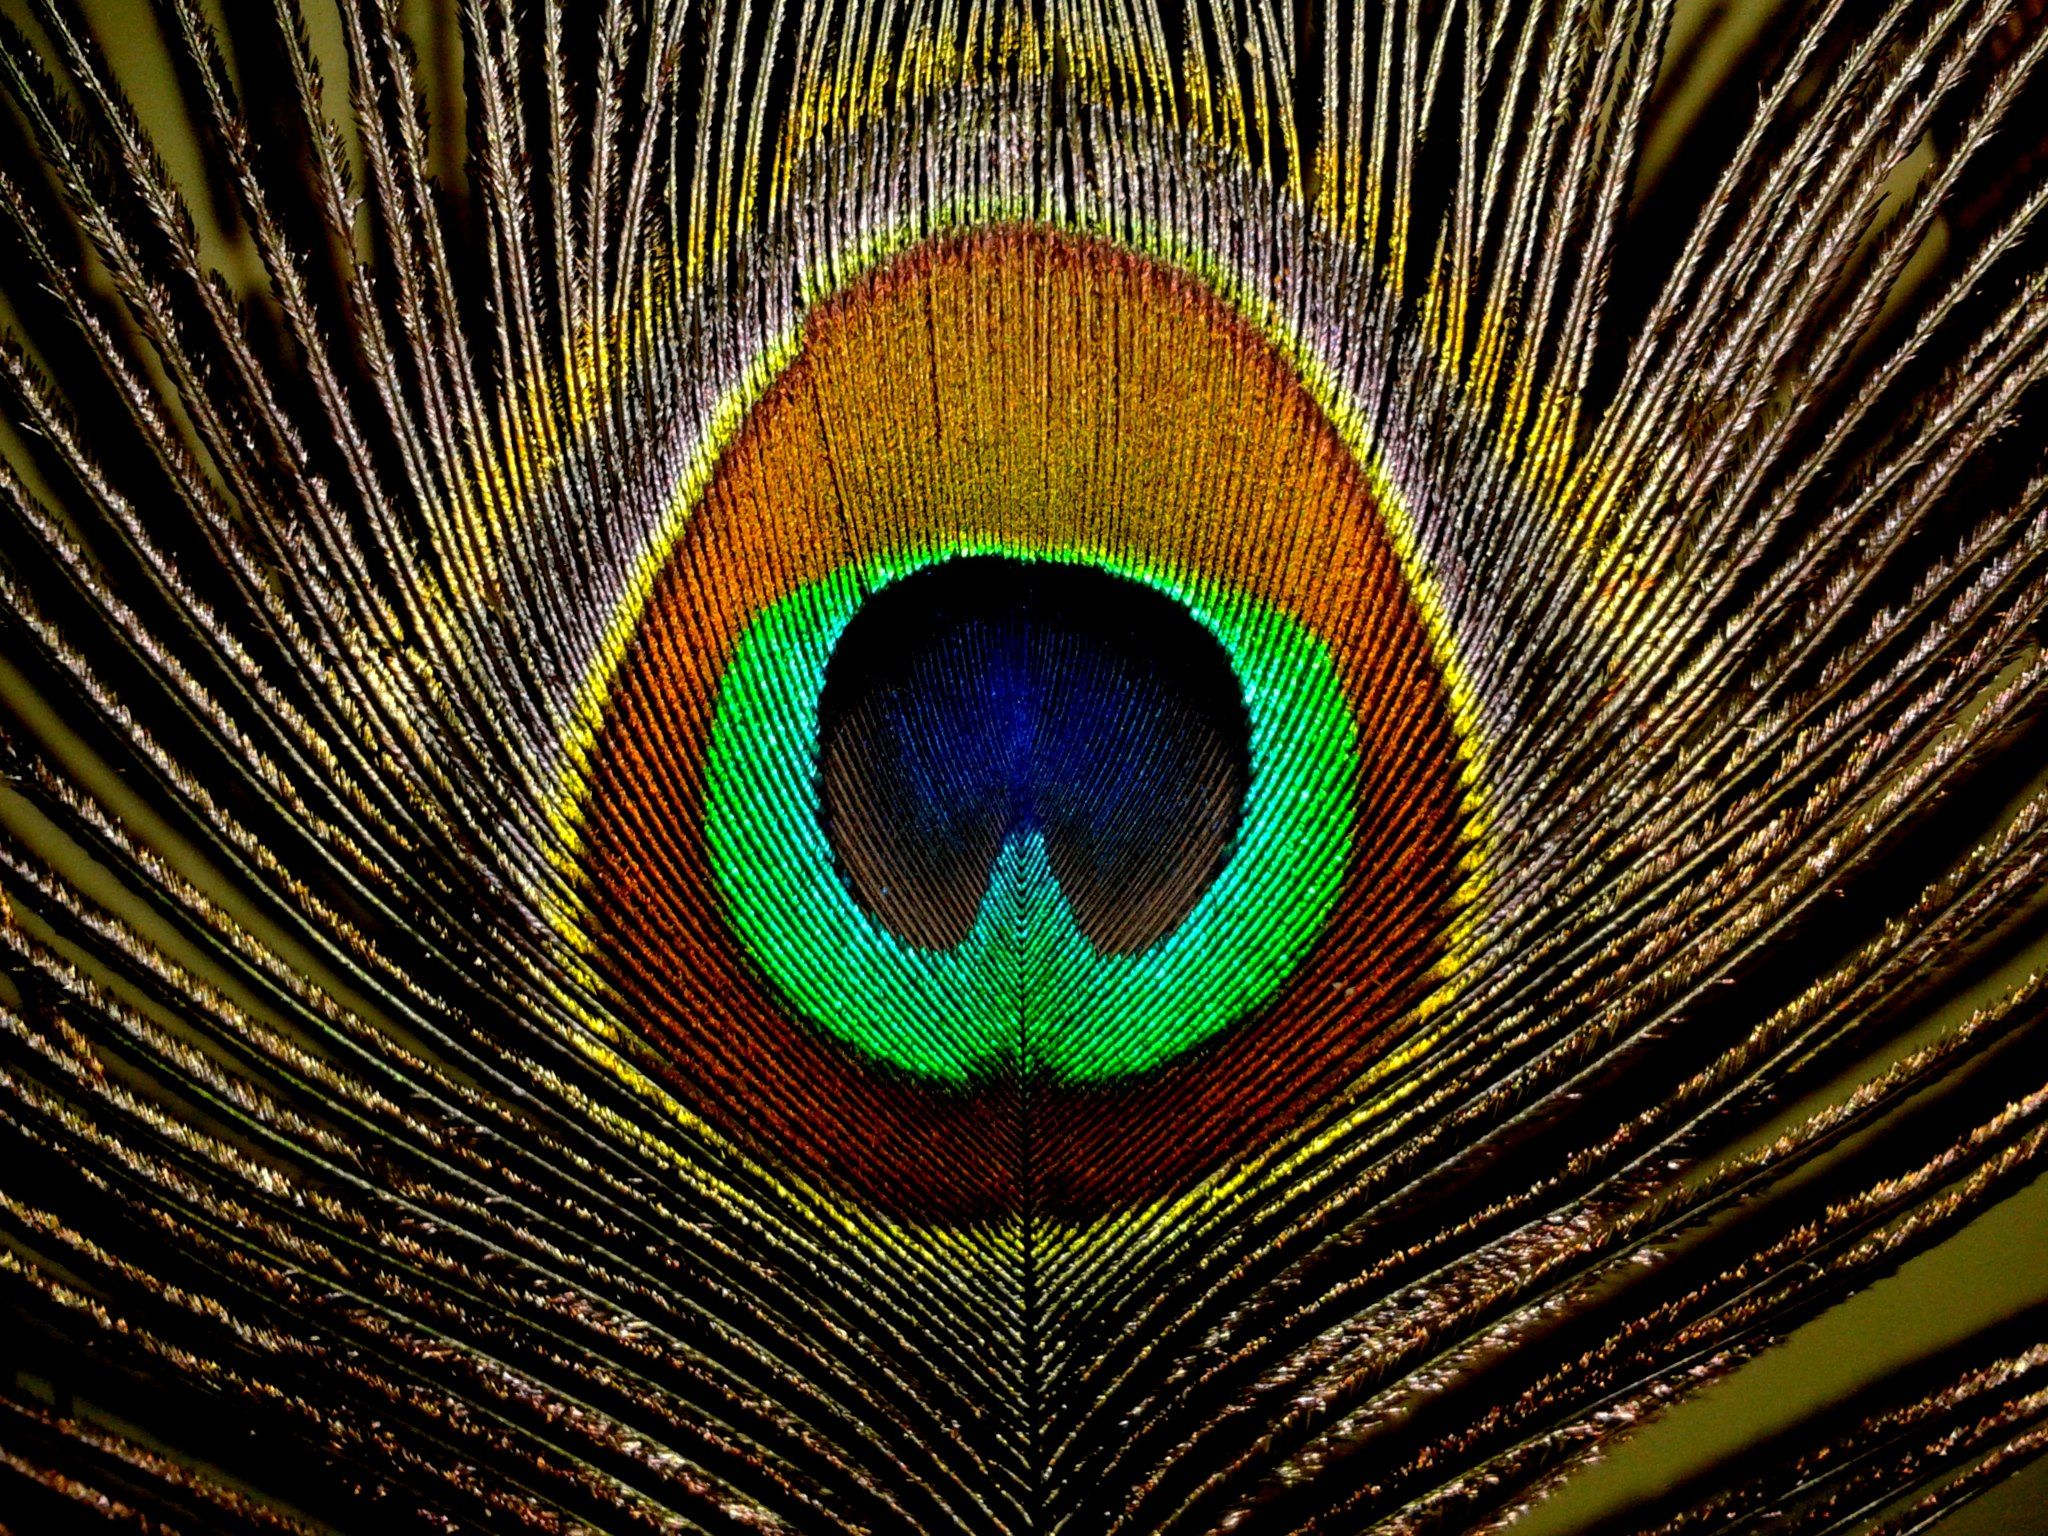 Peacock Feathers HD Wallpapers, Peacock Feathers